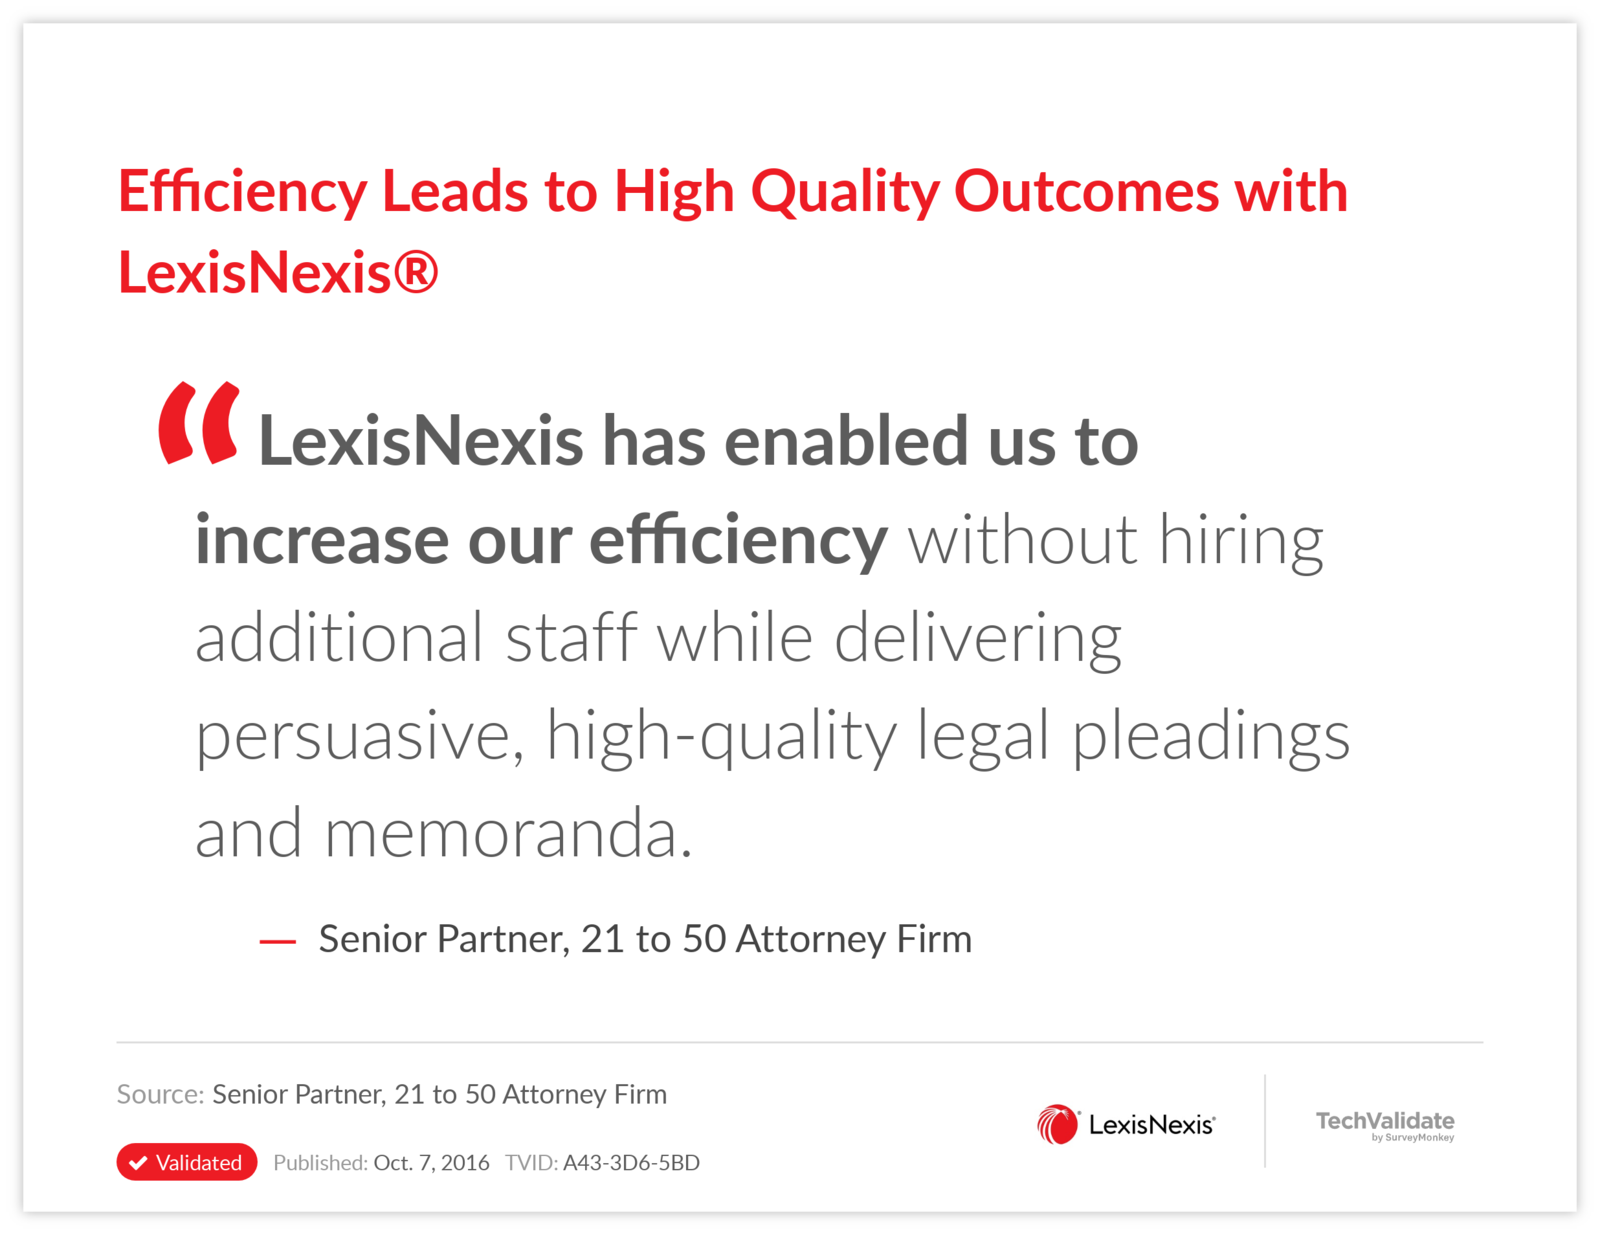 Efficiency Leads to High Quality Outcomes with LexisNexis®